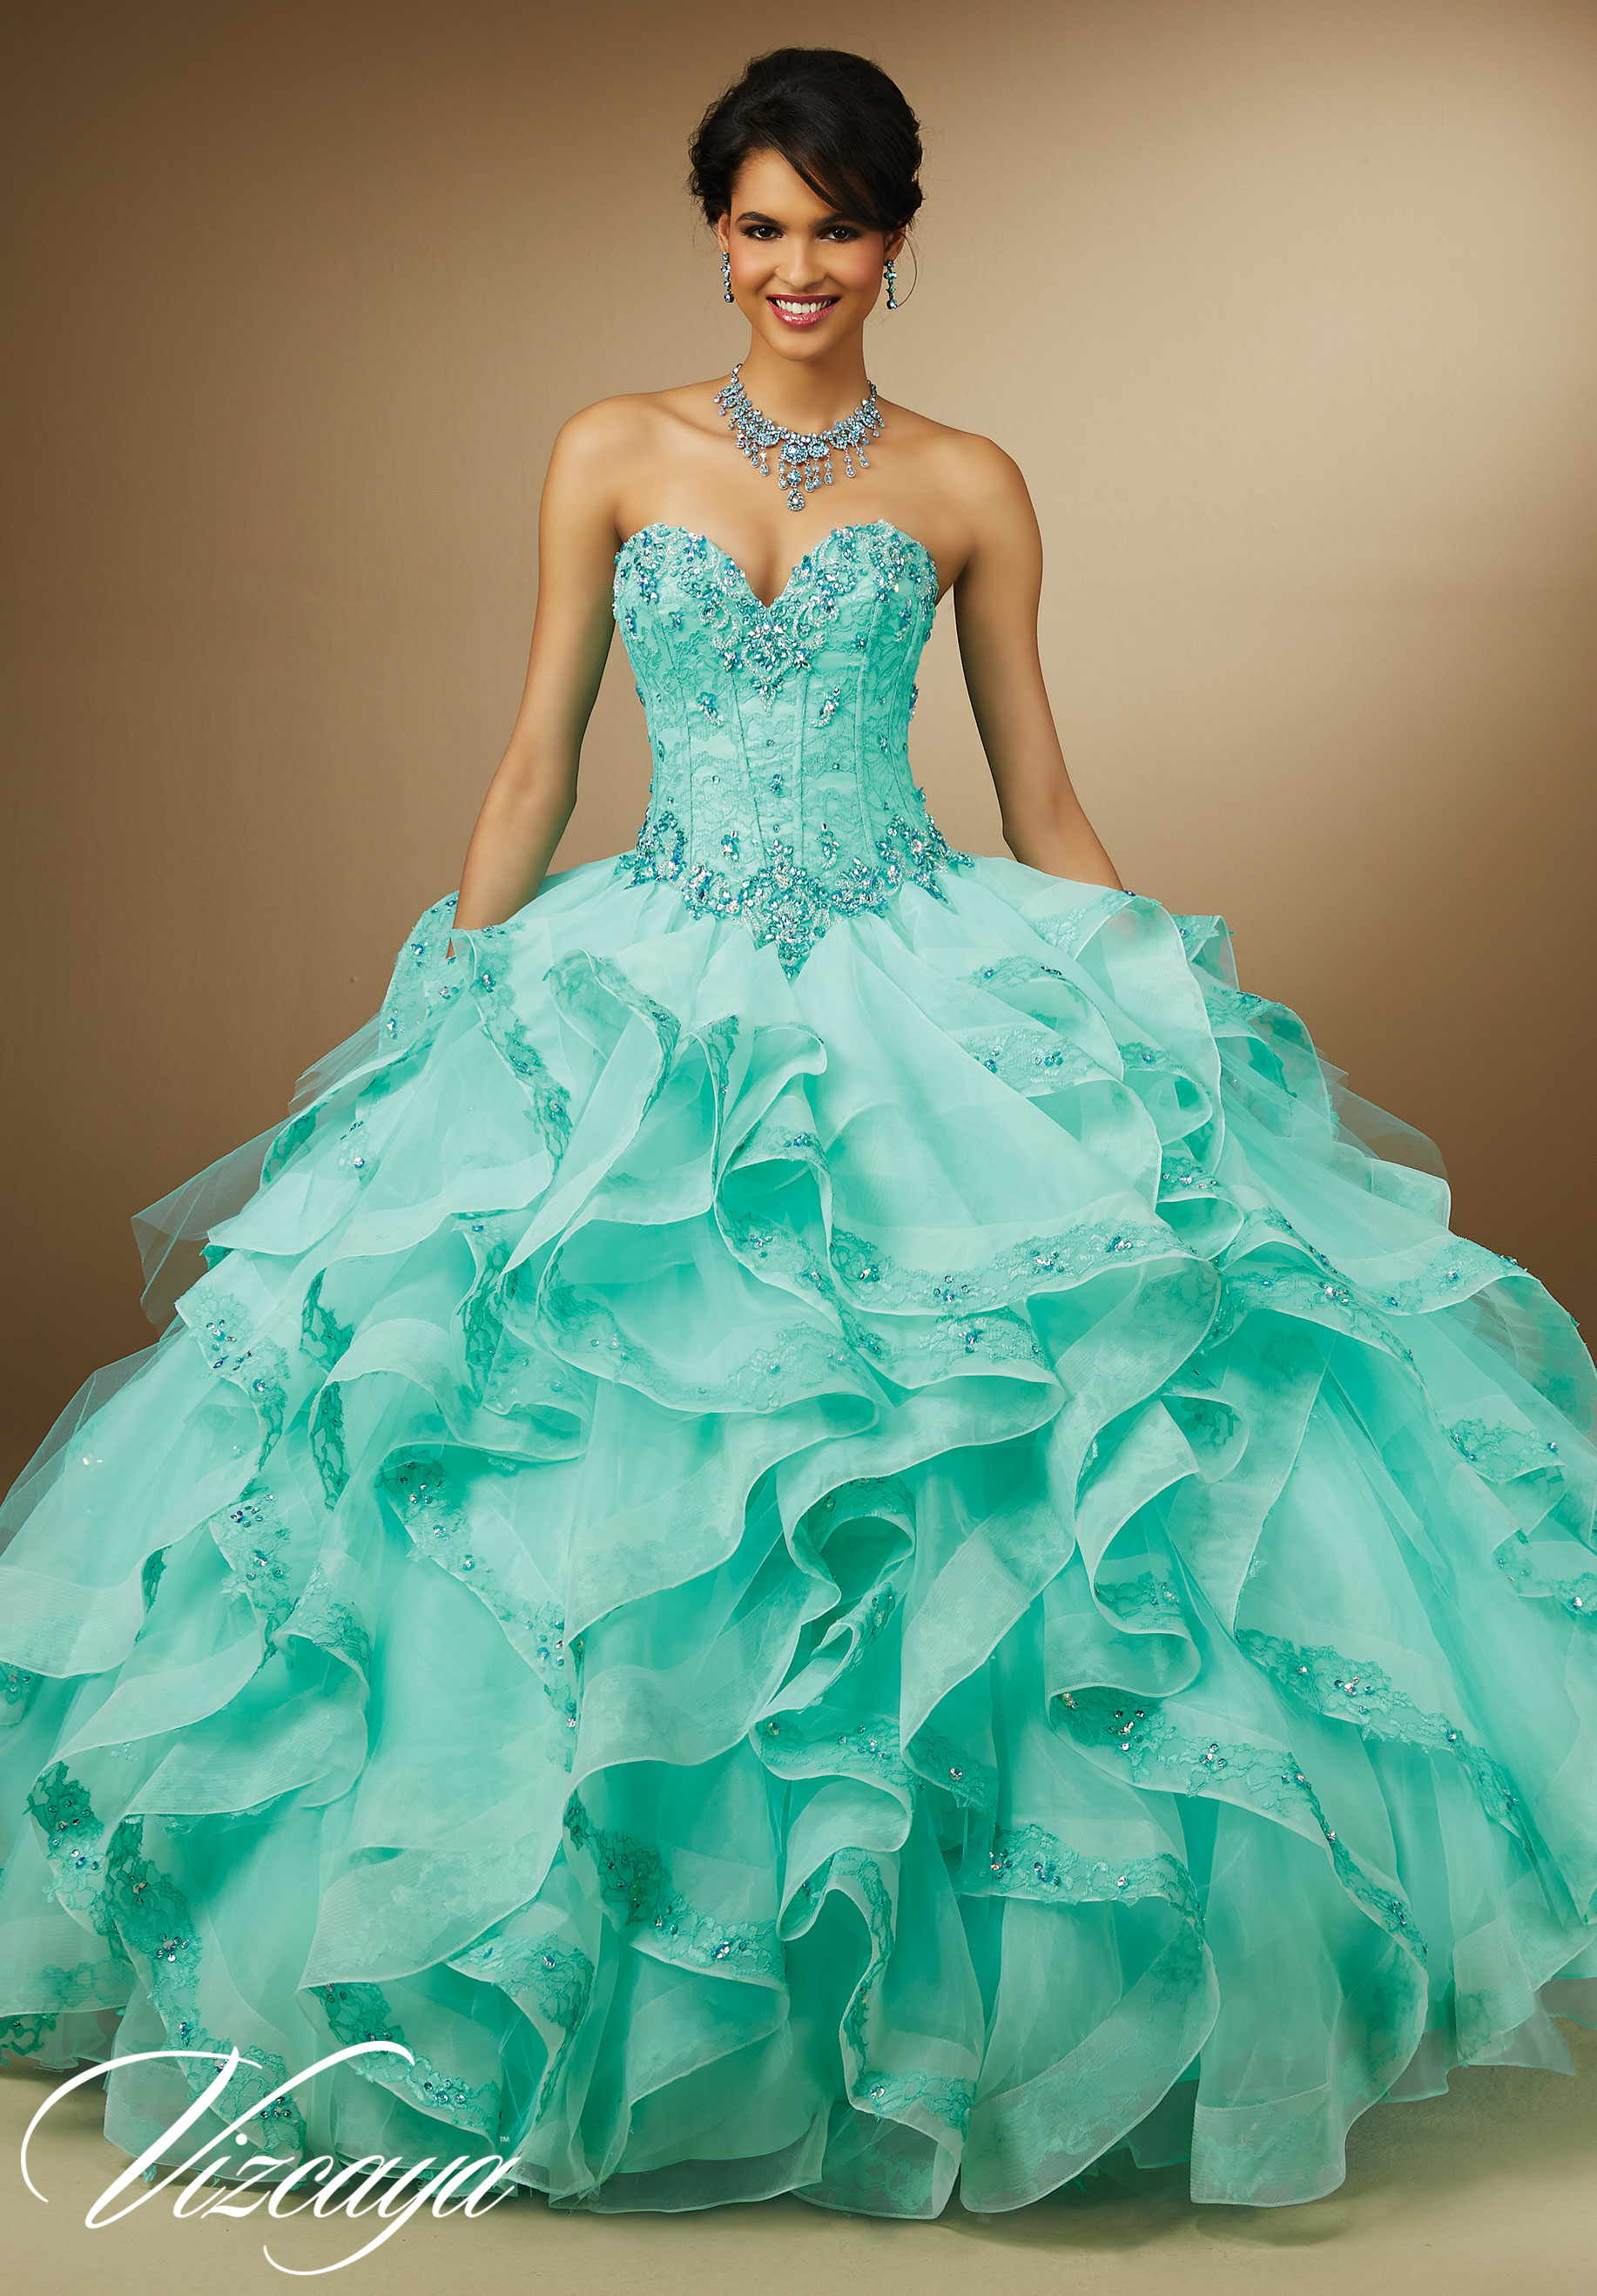 Beautiful 16th Birthday Party Dresses Illustration Wedding Ideas